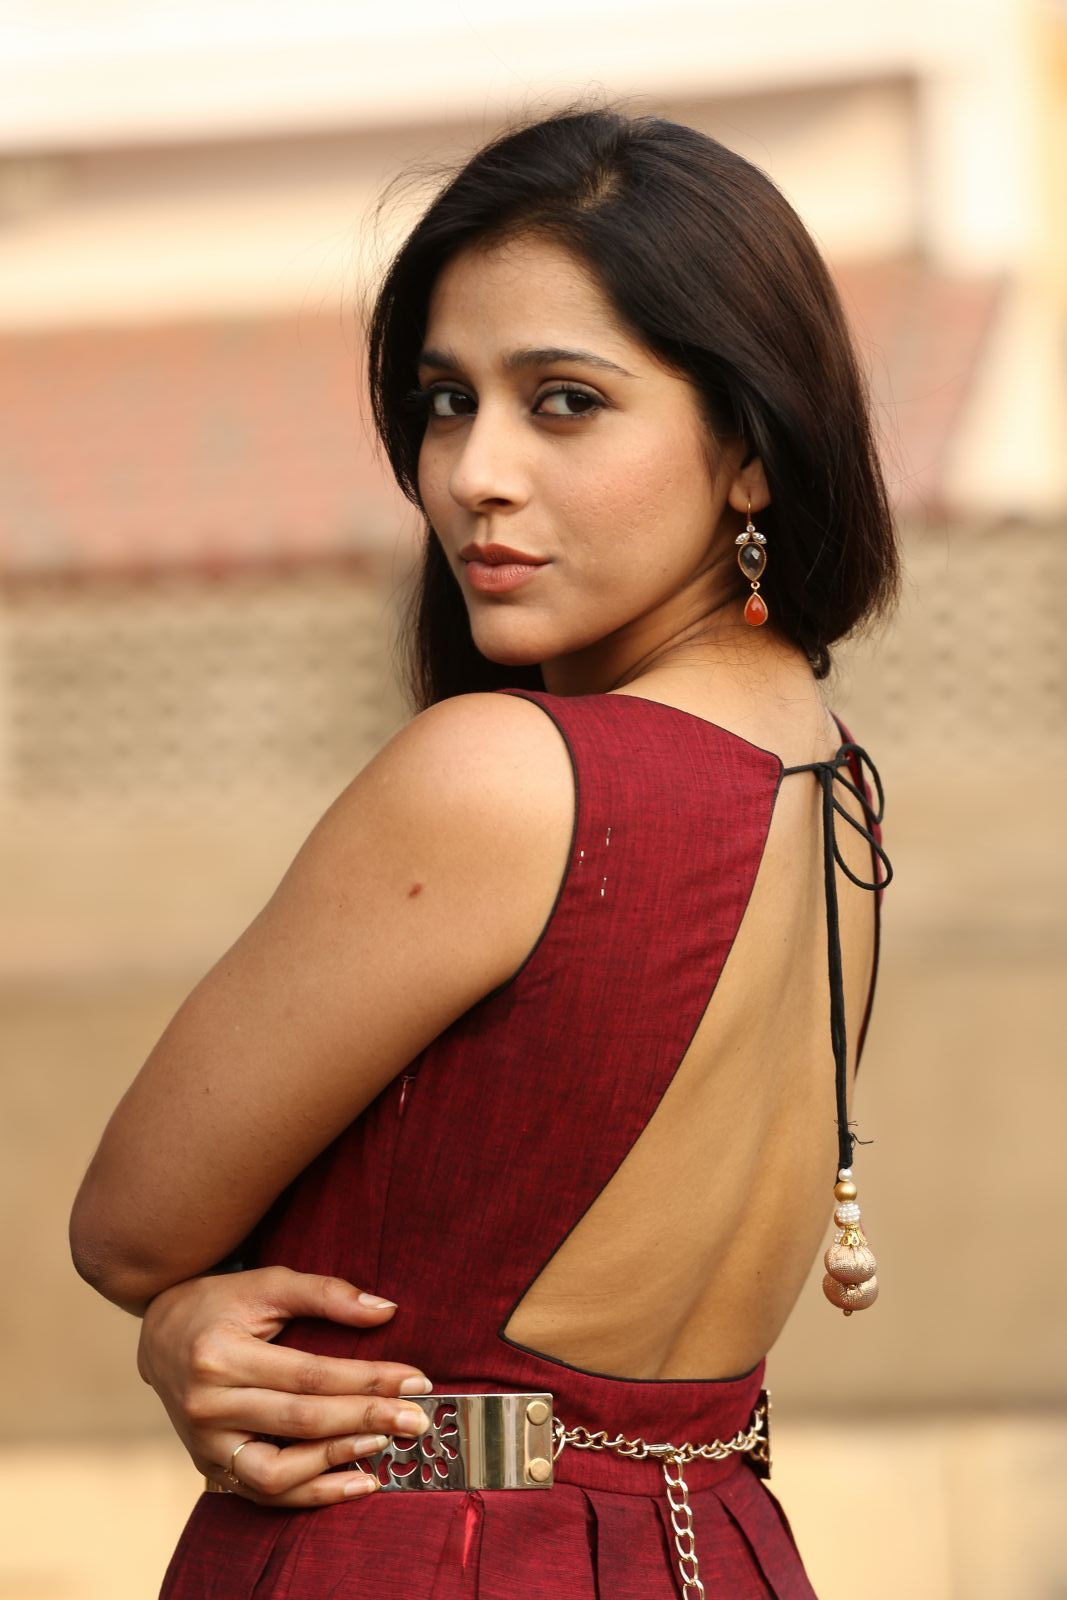 rashmi gautam Rashmi Gautam Sizzles In Her Brand New Outfit | Movie Business Rashmi Hot Pics 252